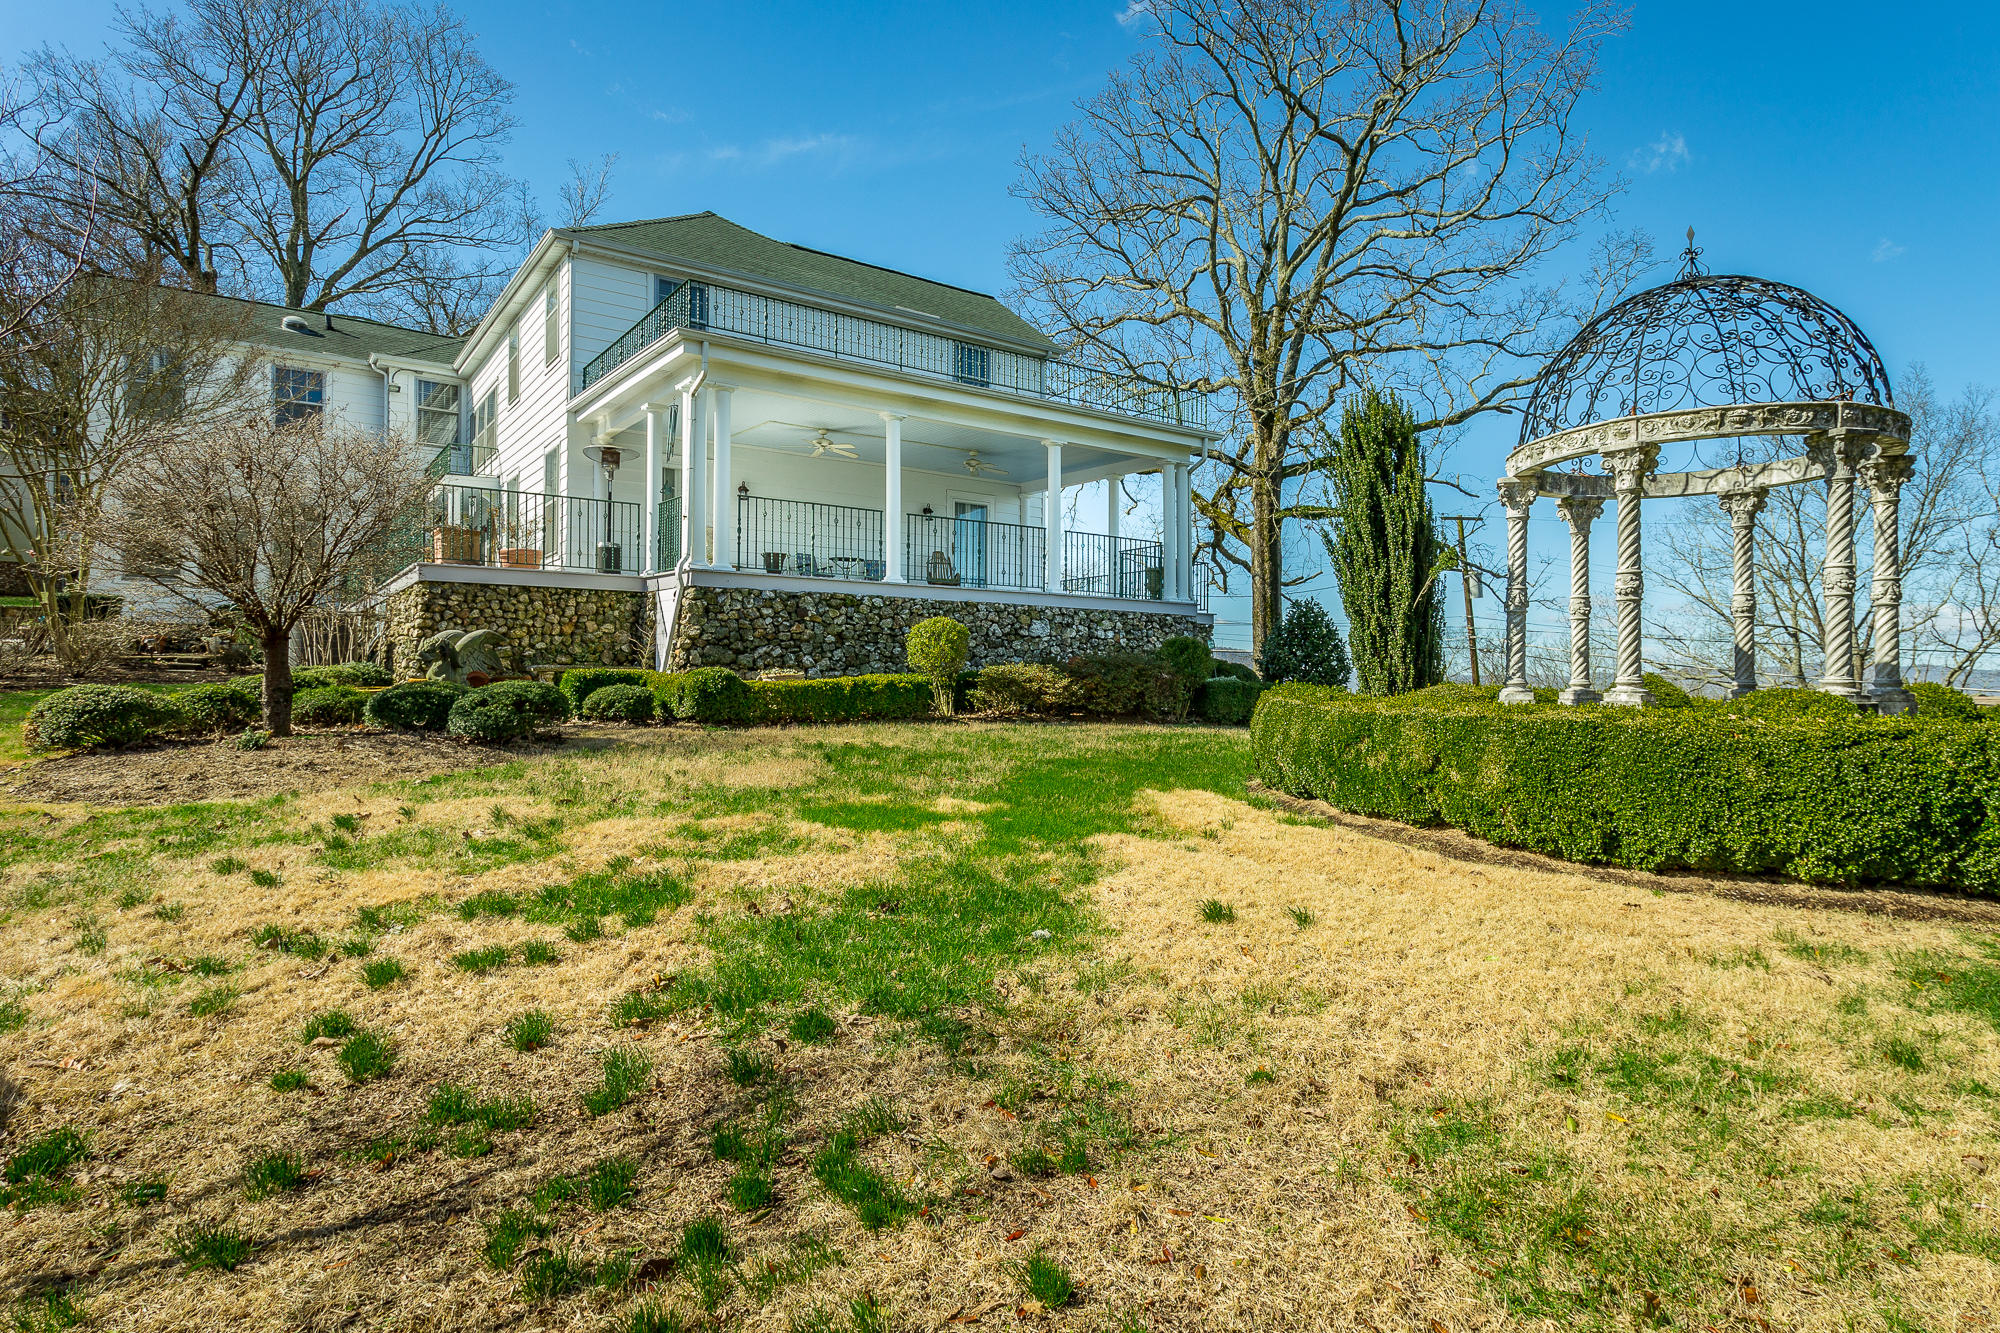 76 N Crest Rd, Chattanooga, TN 37404